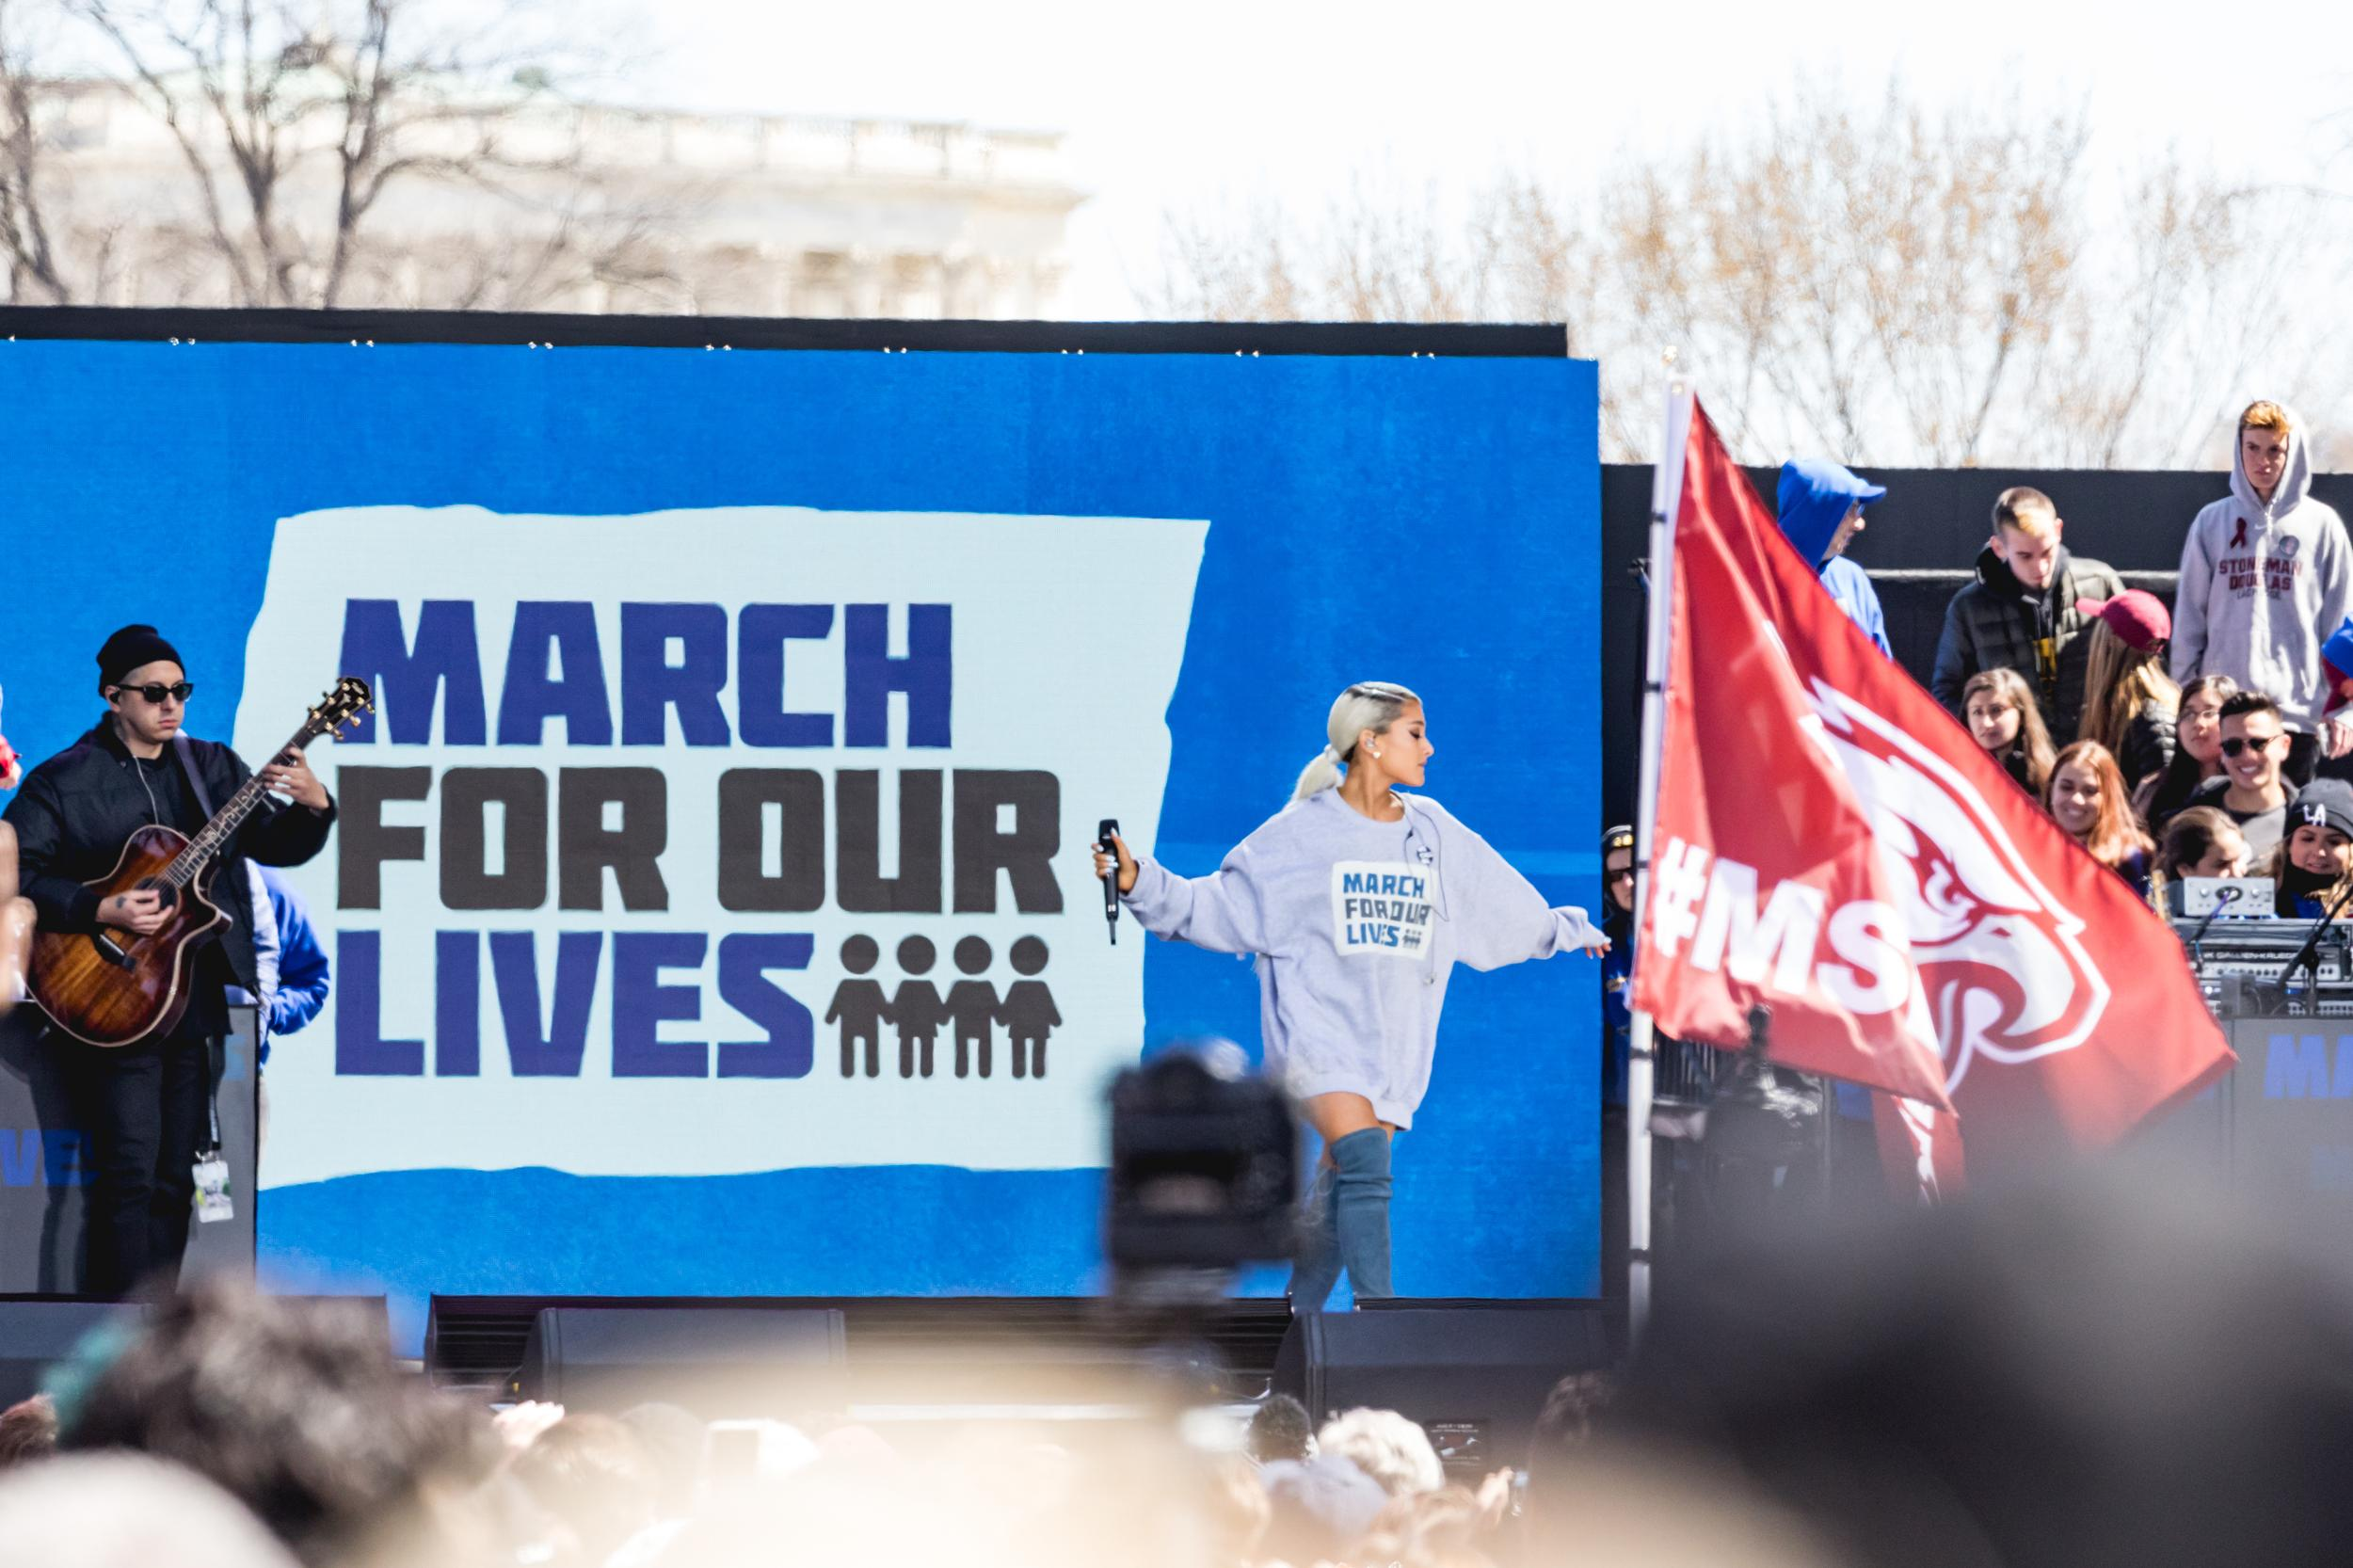 Ariana Grande performs at the March For Our Lives Rally in Washington, D.C. on Saturday, March 24, 2018. (Photo by Cheriss May)